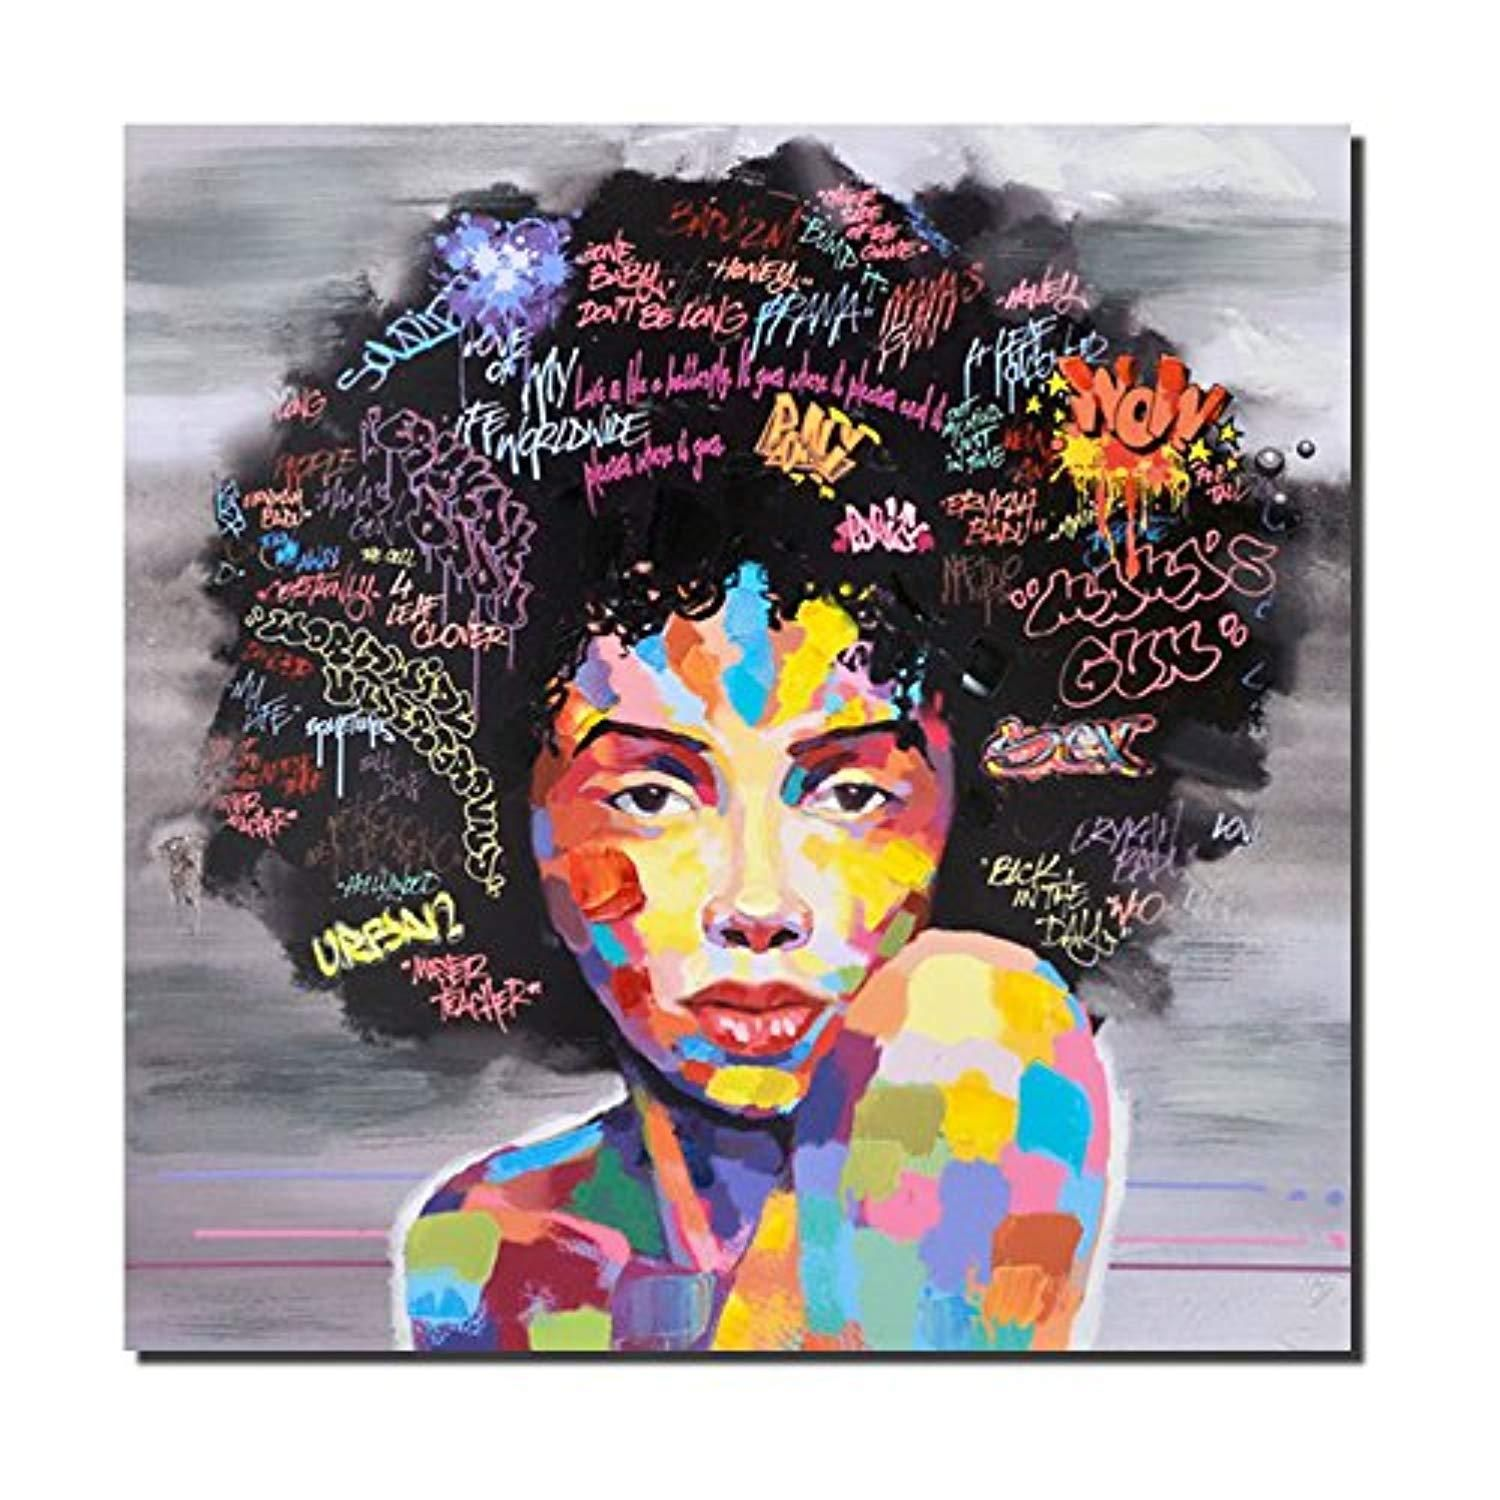 Pinetree art african american black wall decor canvas original designed pop graffiti style painting on poster print without frame  also rh pinterest